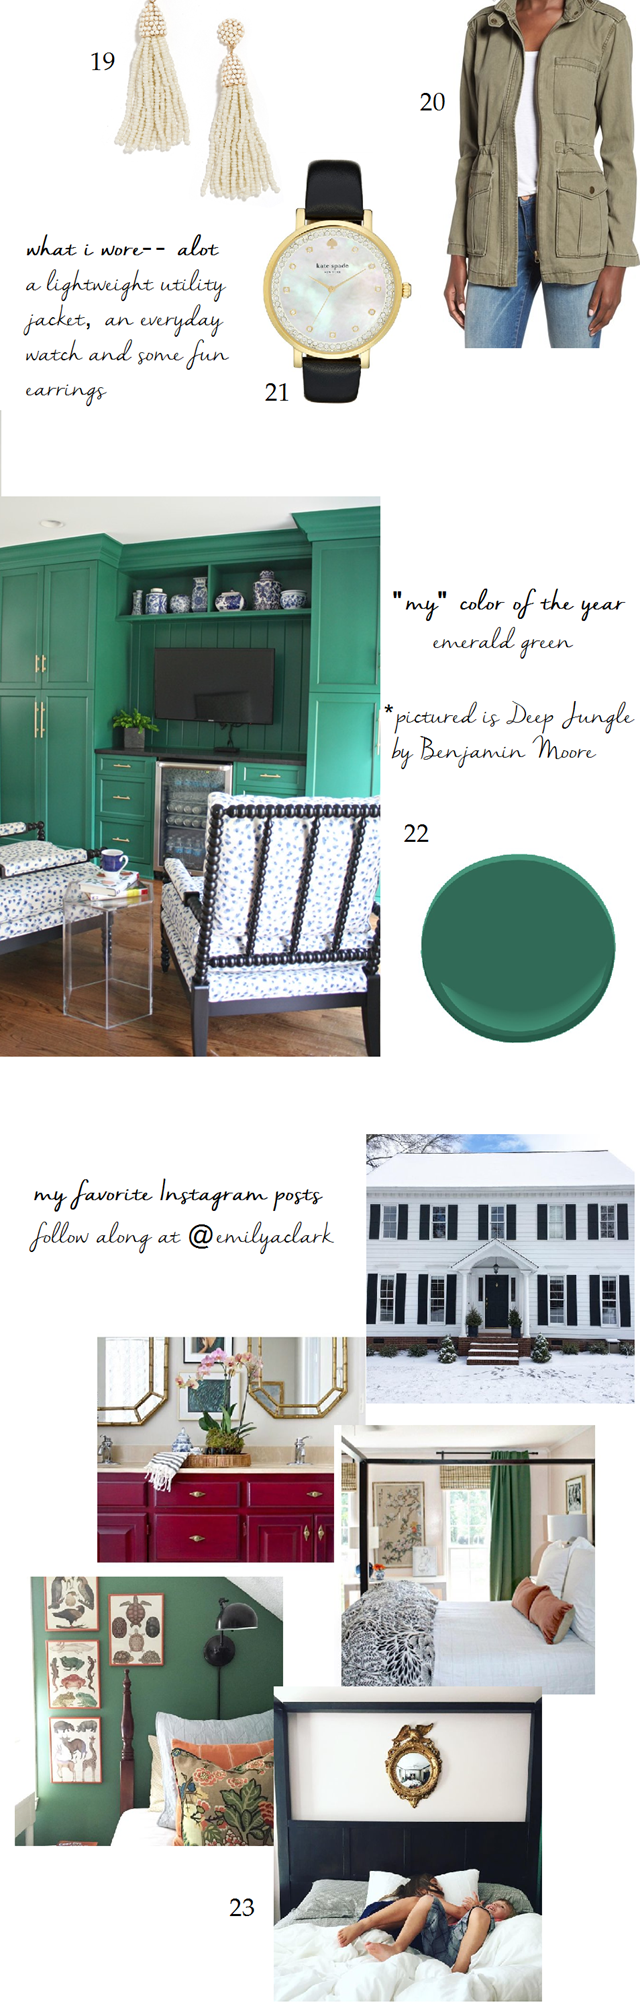 2016 favorite things fashion color IG